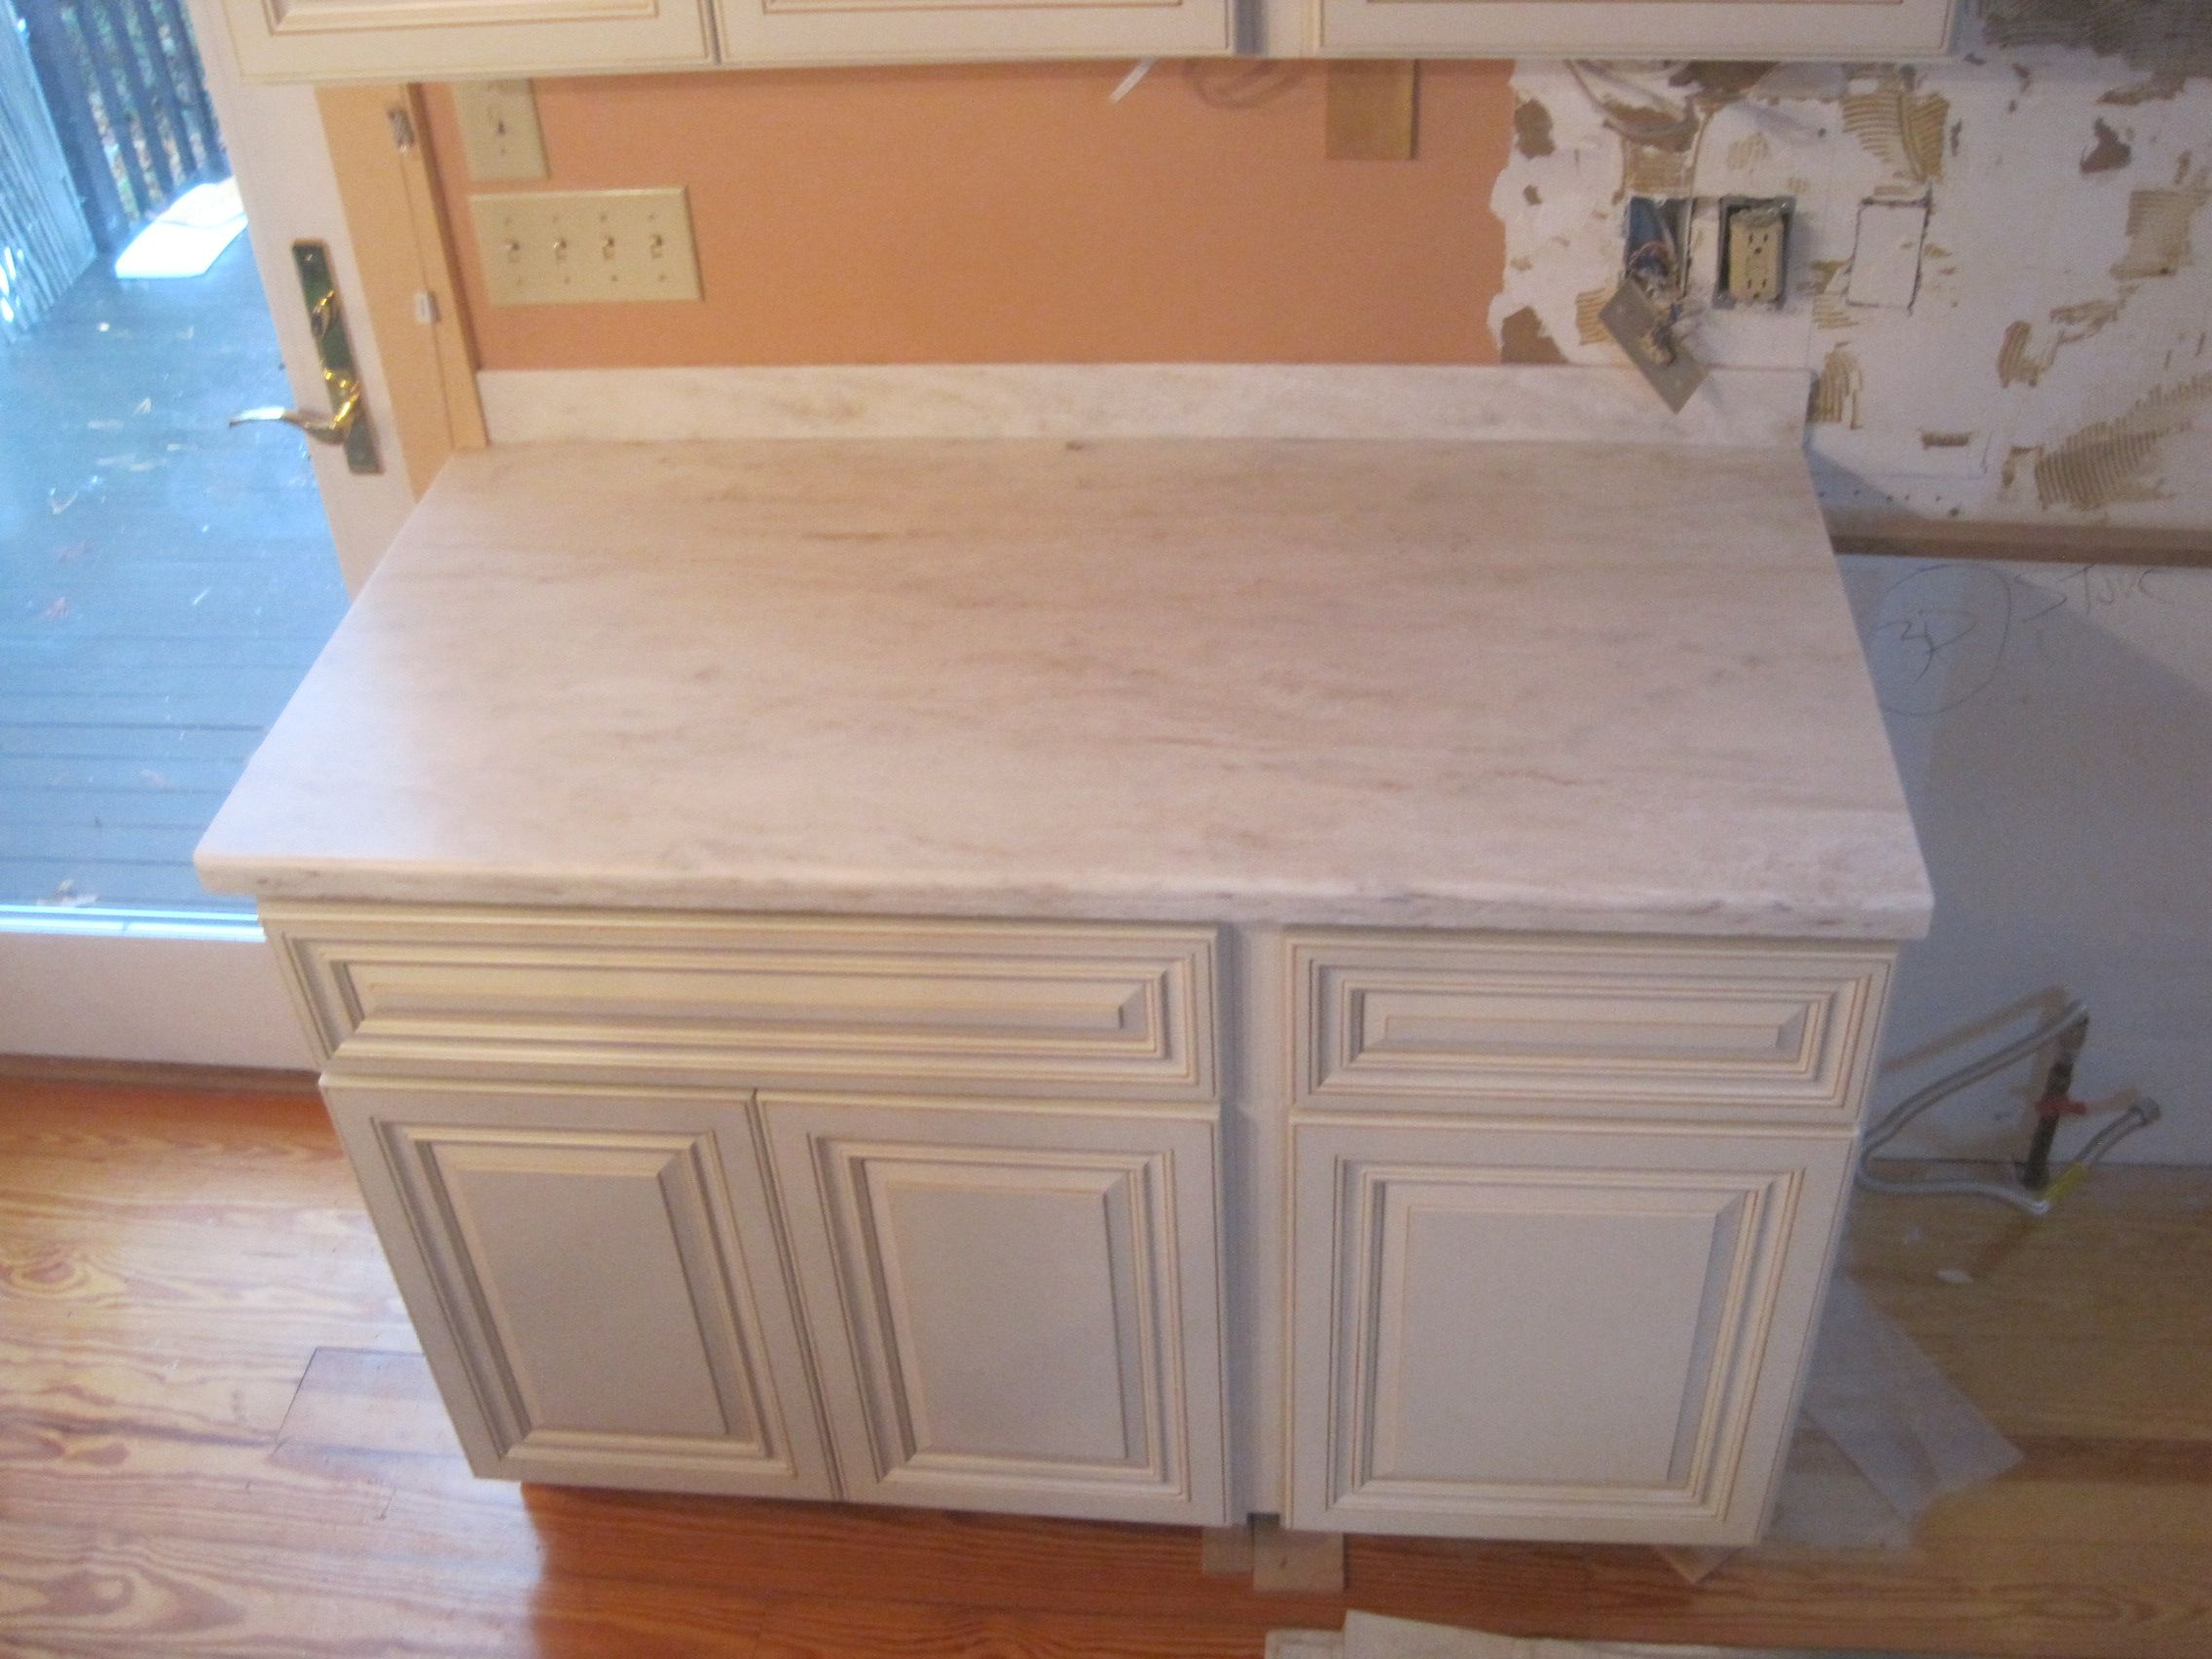 kitchen countertop corian composite picture beautiful and with sinks white of cabinets countertops decorating